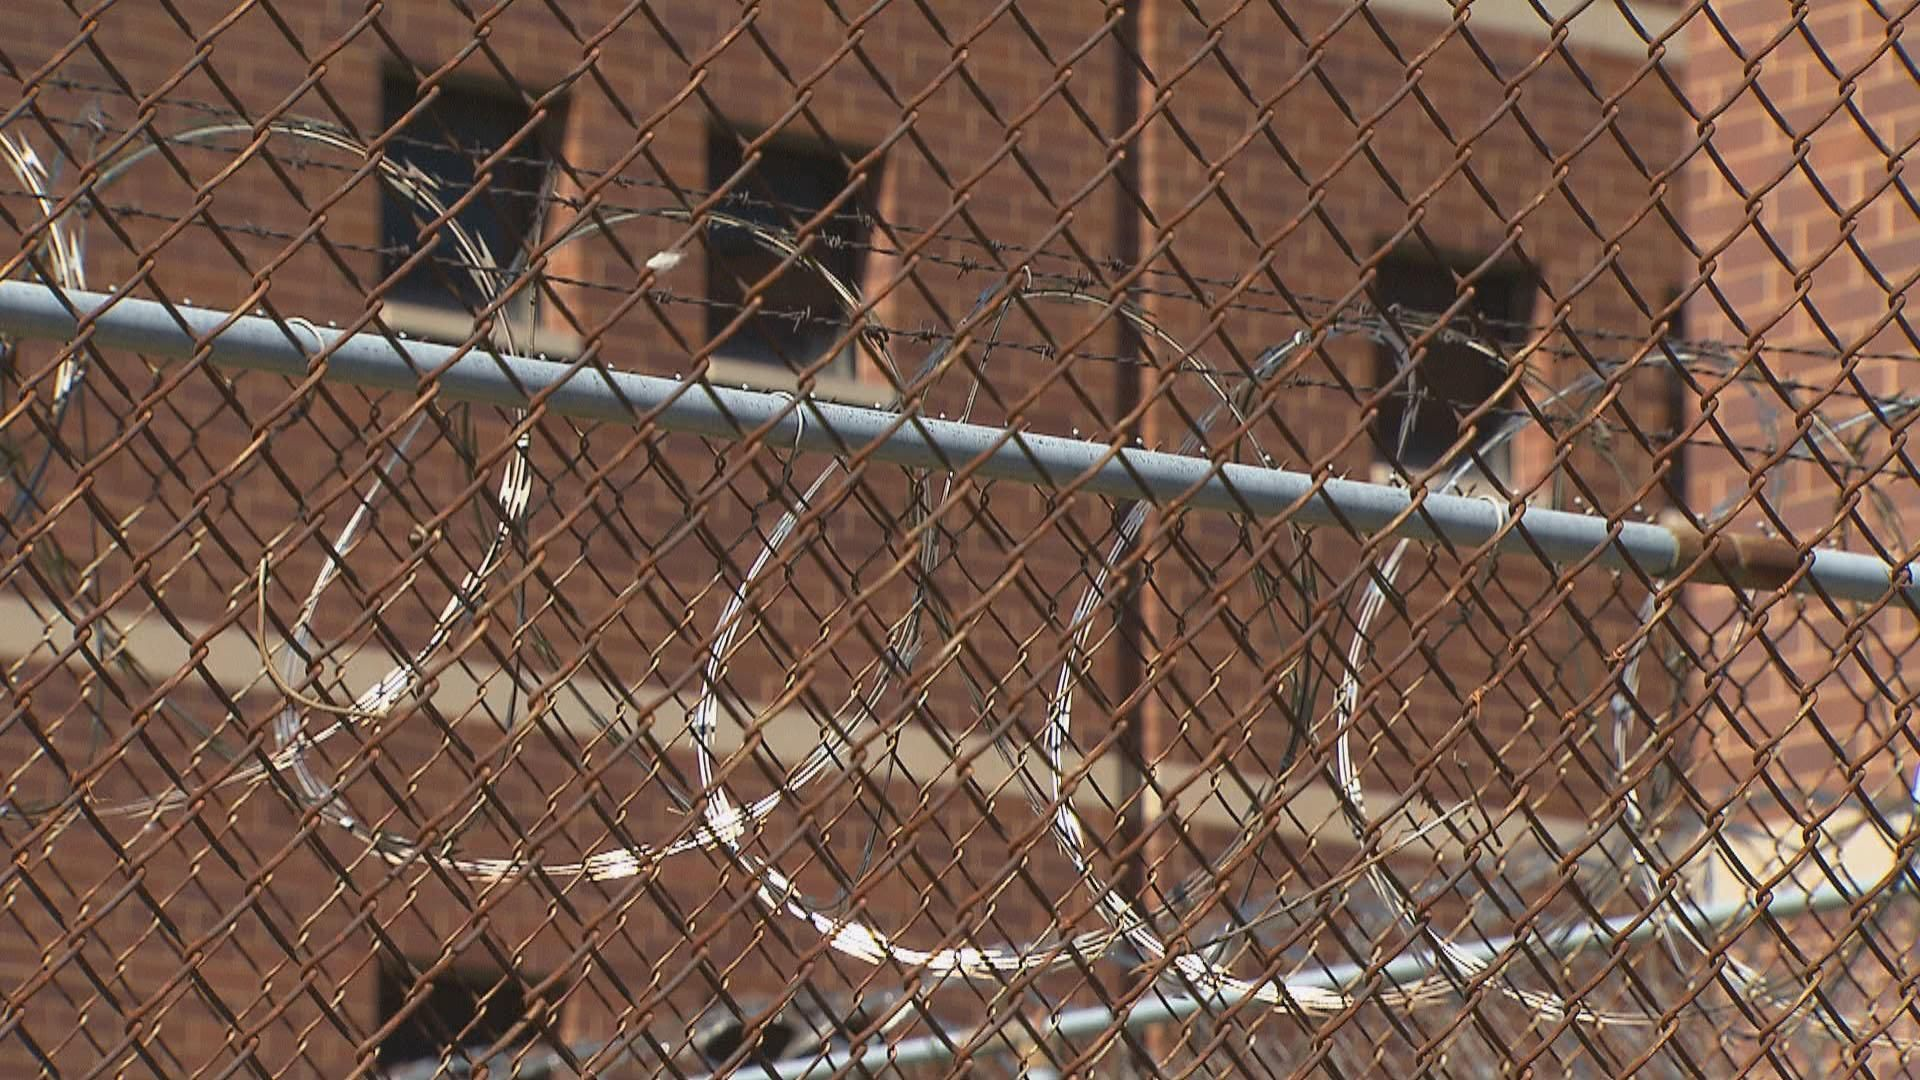 More Than 1,000 Medically Vulnerable IDOC Inmates to be Released Under Lawsuit Settlement